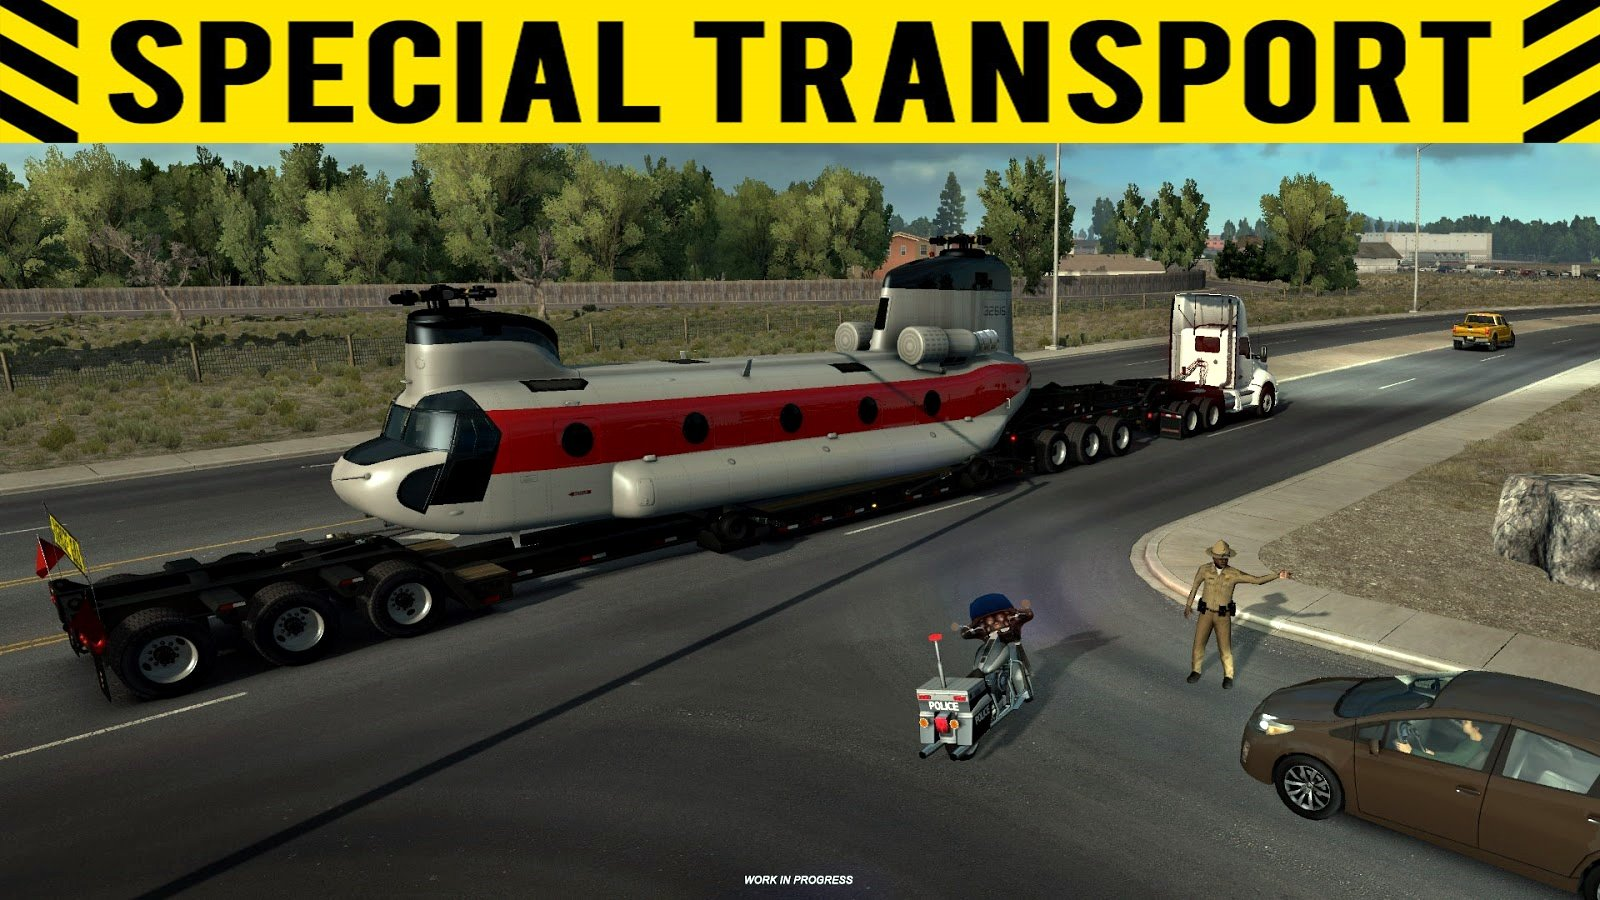 ATS: Special Transport - State of progress